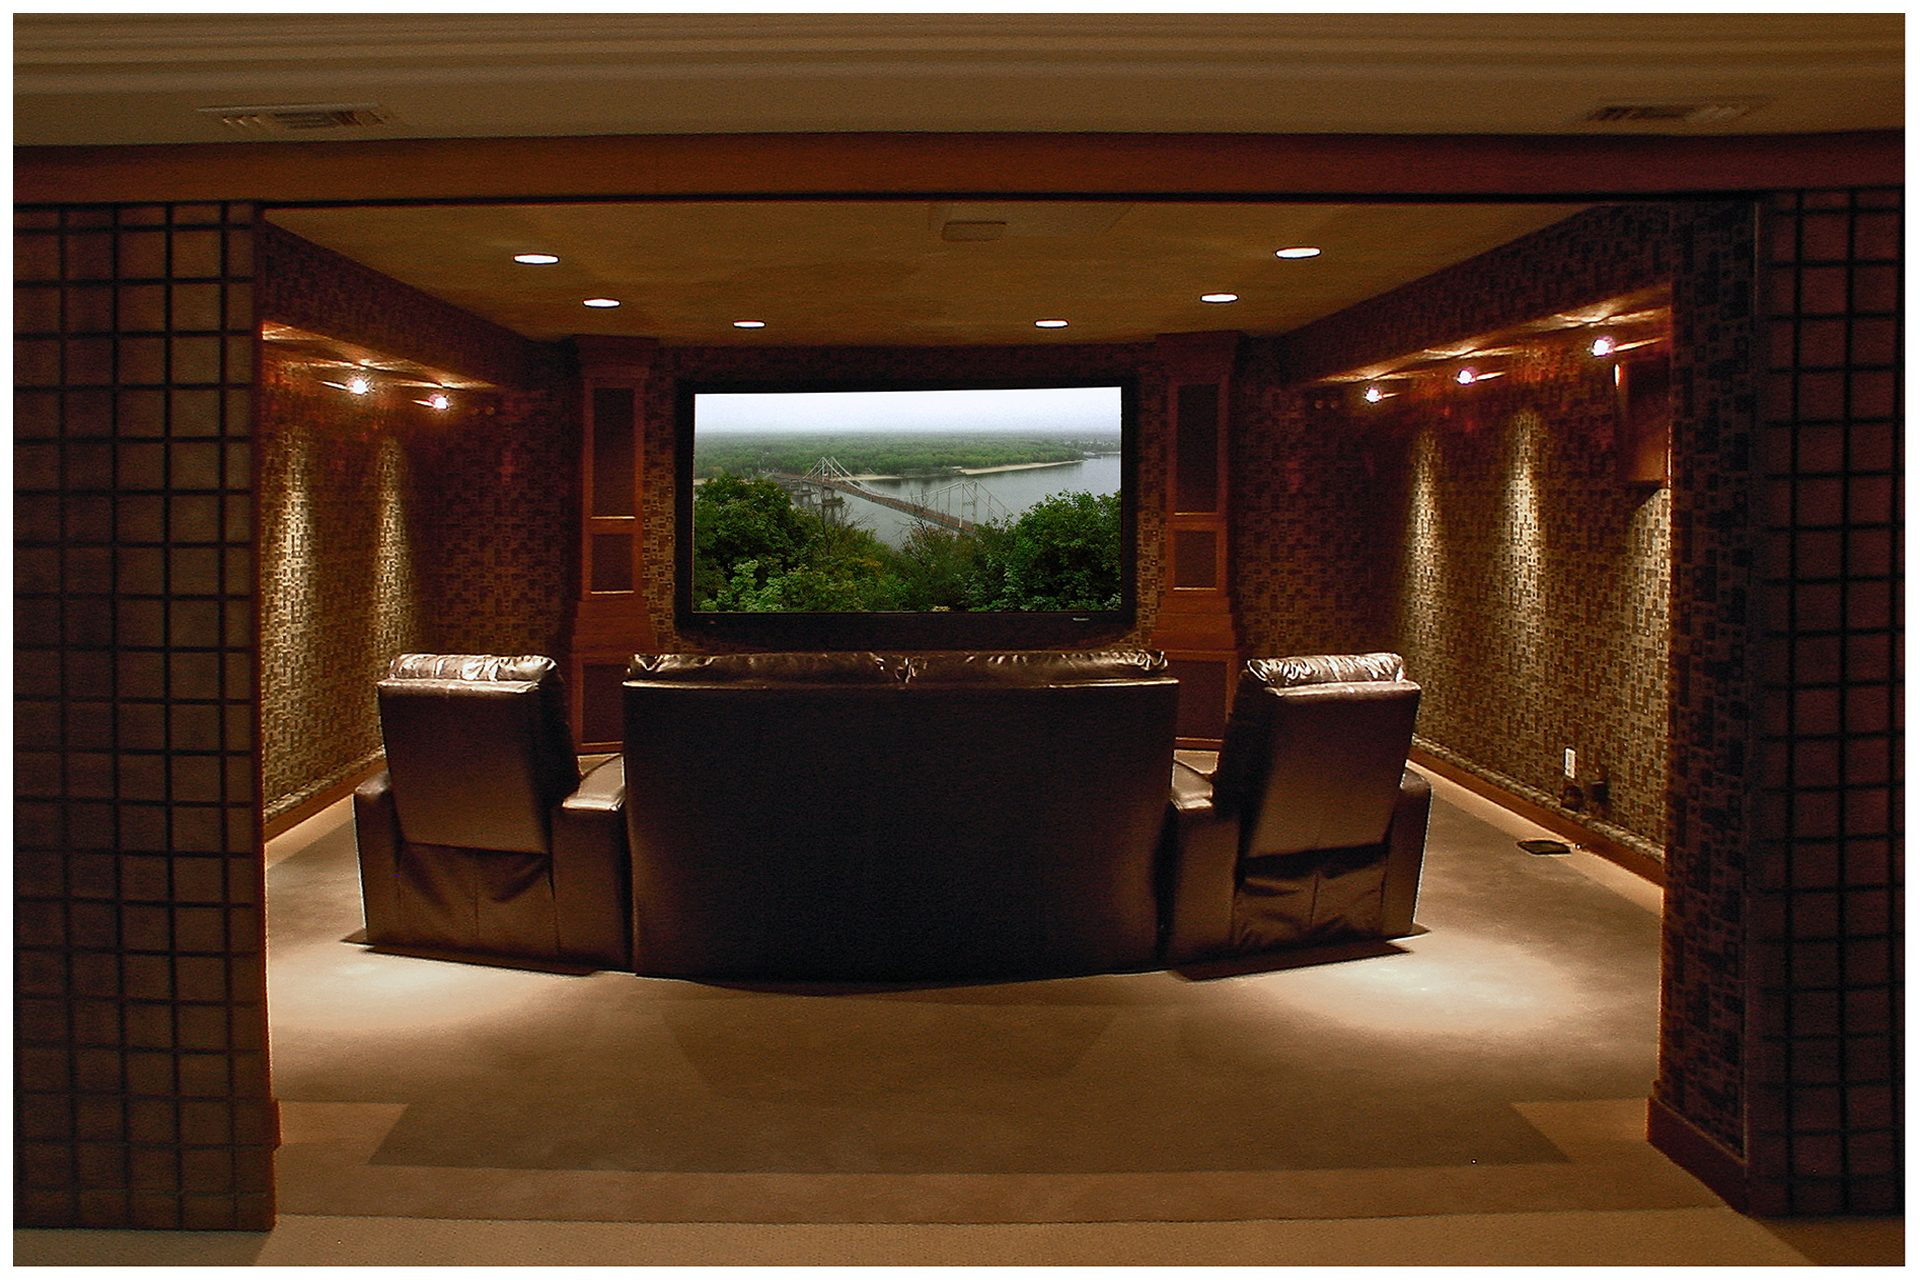 SMALL THEATER IN A DEDICATED ROOMThe before and after pictures above illustrate transformation of a relatively small spare storage space in a basement into a high-end small theater.  Room's ceiling height of only eight feet limited seating to only one row. The four-seat theater however suited well the family of three.